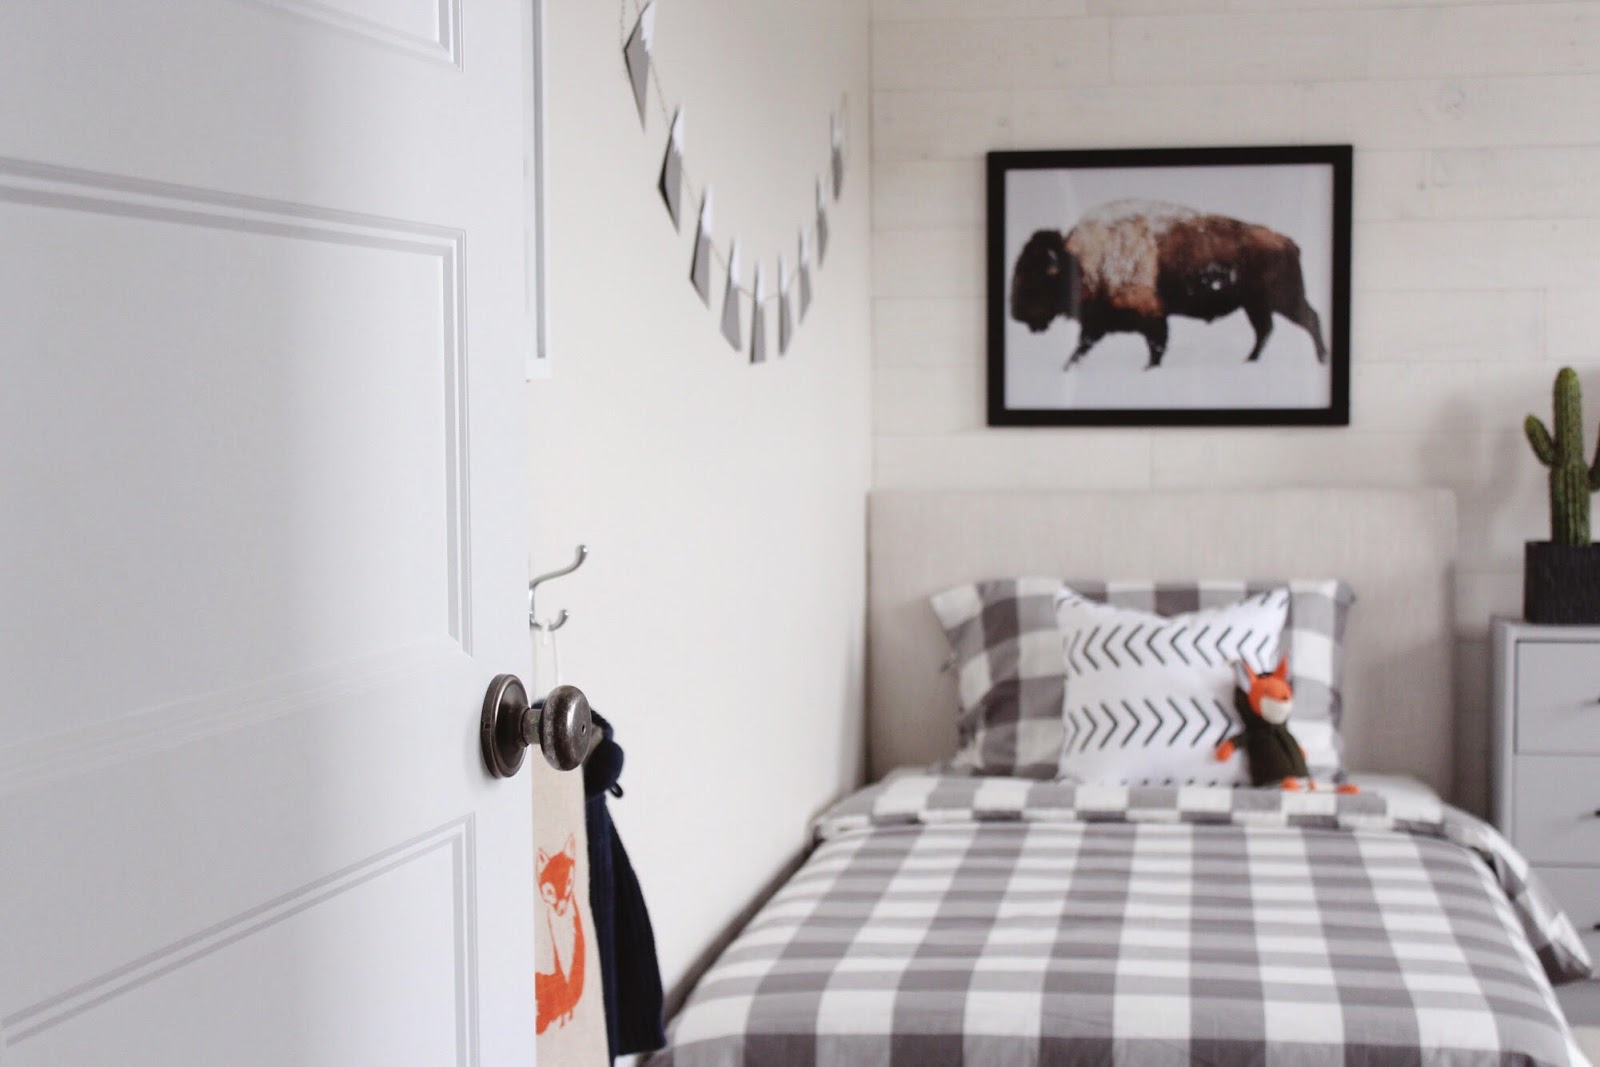 Modern rustic kids bedroom - There Are A Couple Of Key Elements That I Feel Really Make This Space First Being The Stikwood Rustic Shiplapped Accent Wall This Wall Is In The Hamptons